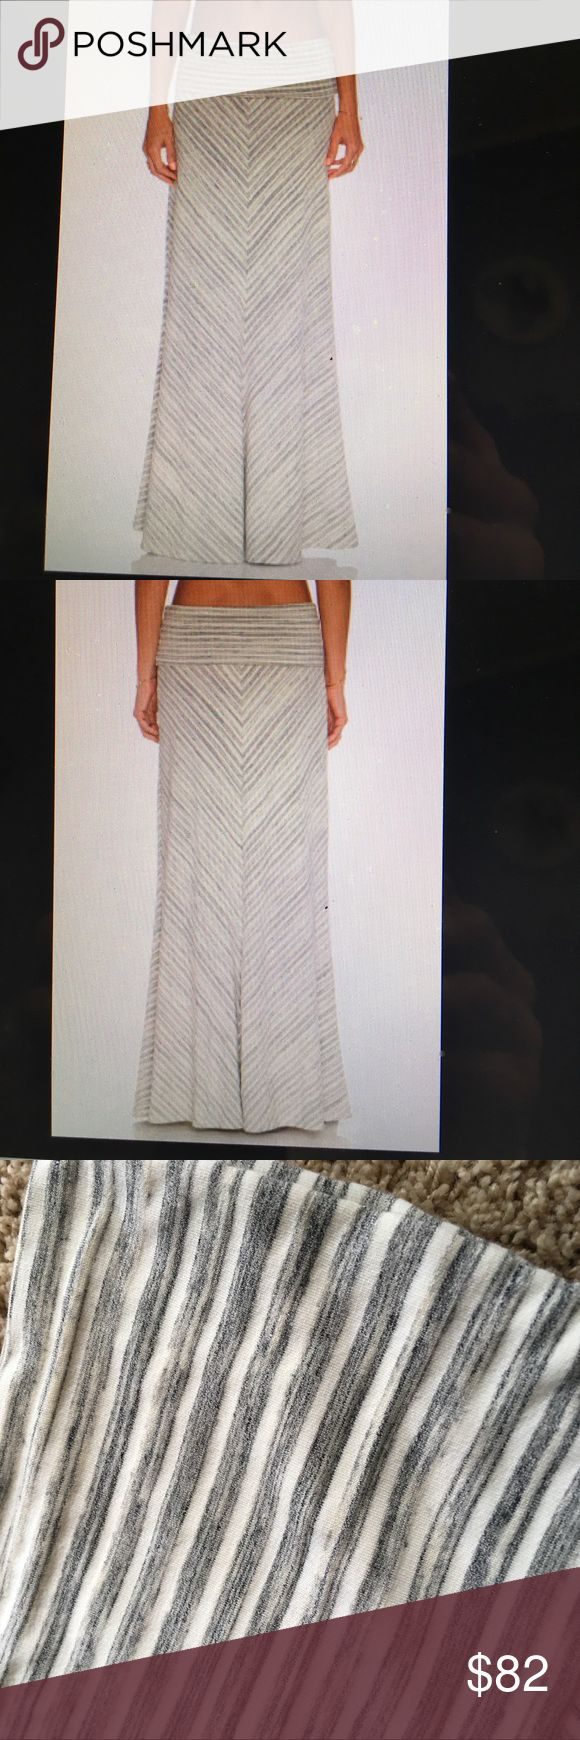 NWT Saint Grace Chevron Maxi Skirt, XS Brand-new. Never worn. Tags attached. Unlined. Buttery soft fabric. Stretch fit. Folder waist so skirt can be adjusted to fit your body. Skirt measures approximately 45 inches in length. Saint Grace Skirts Maxi